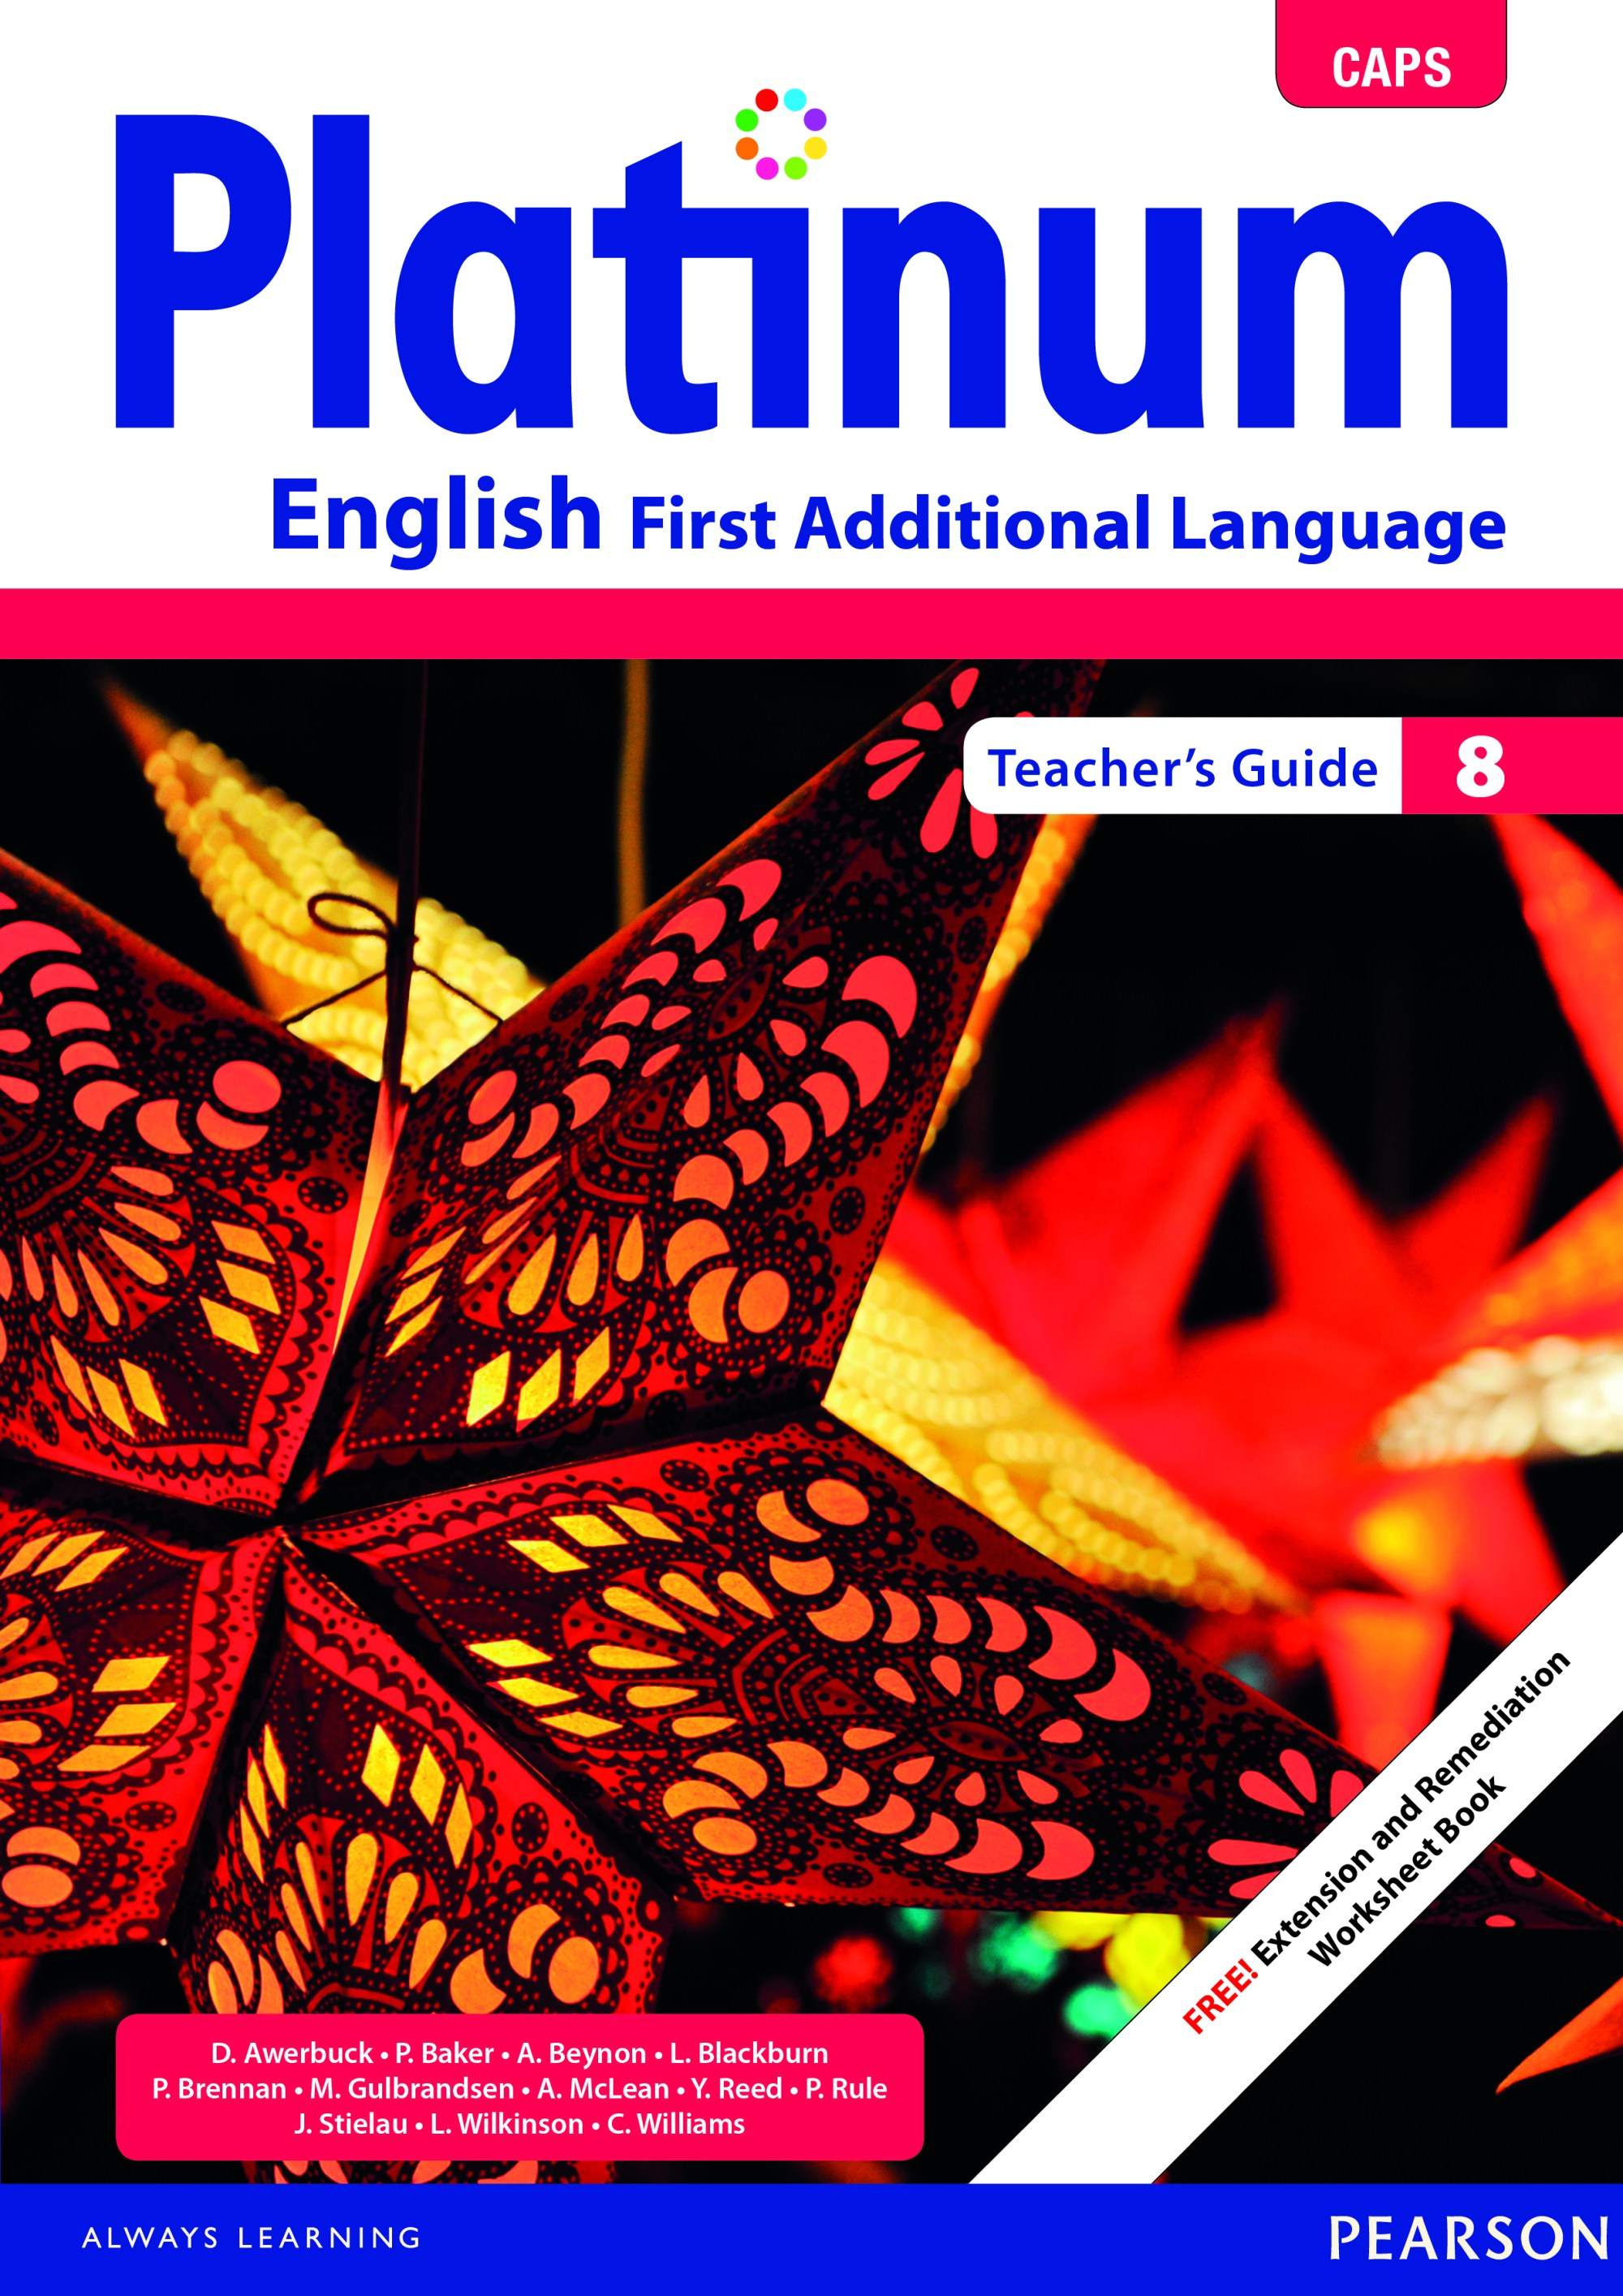 hight resolution of Platinum English First Additional Language Grade 8 Teacher's Guide ePDF  (perpetual licence)   WCED ePortal